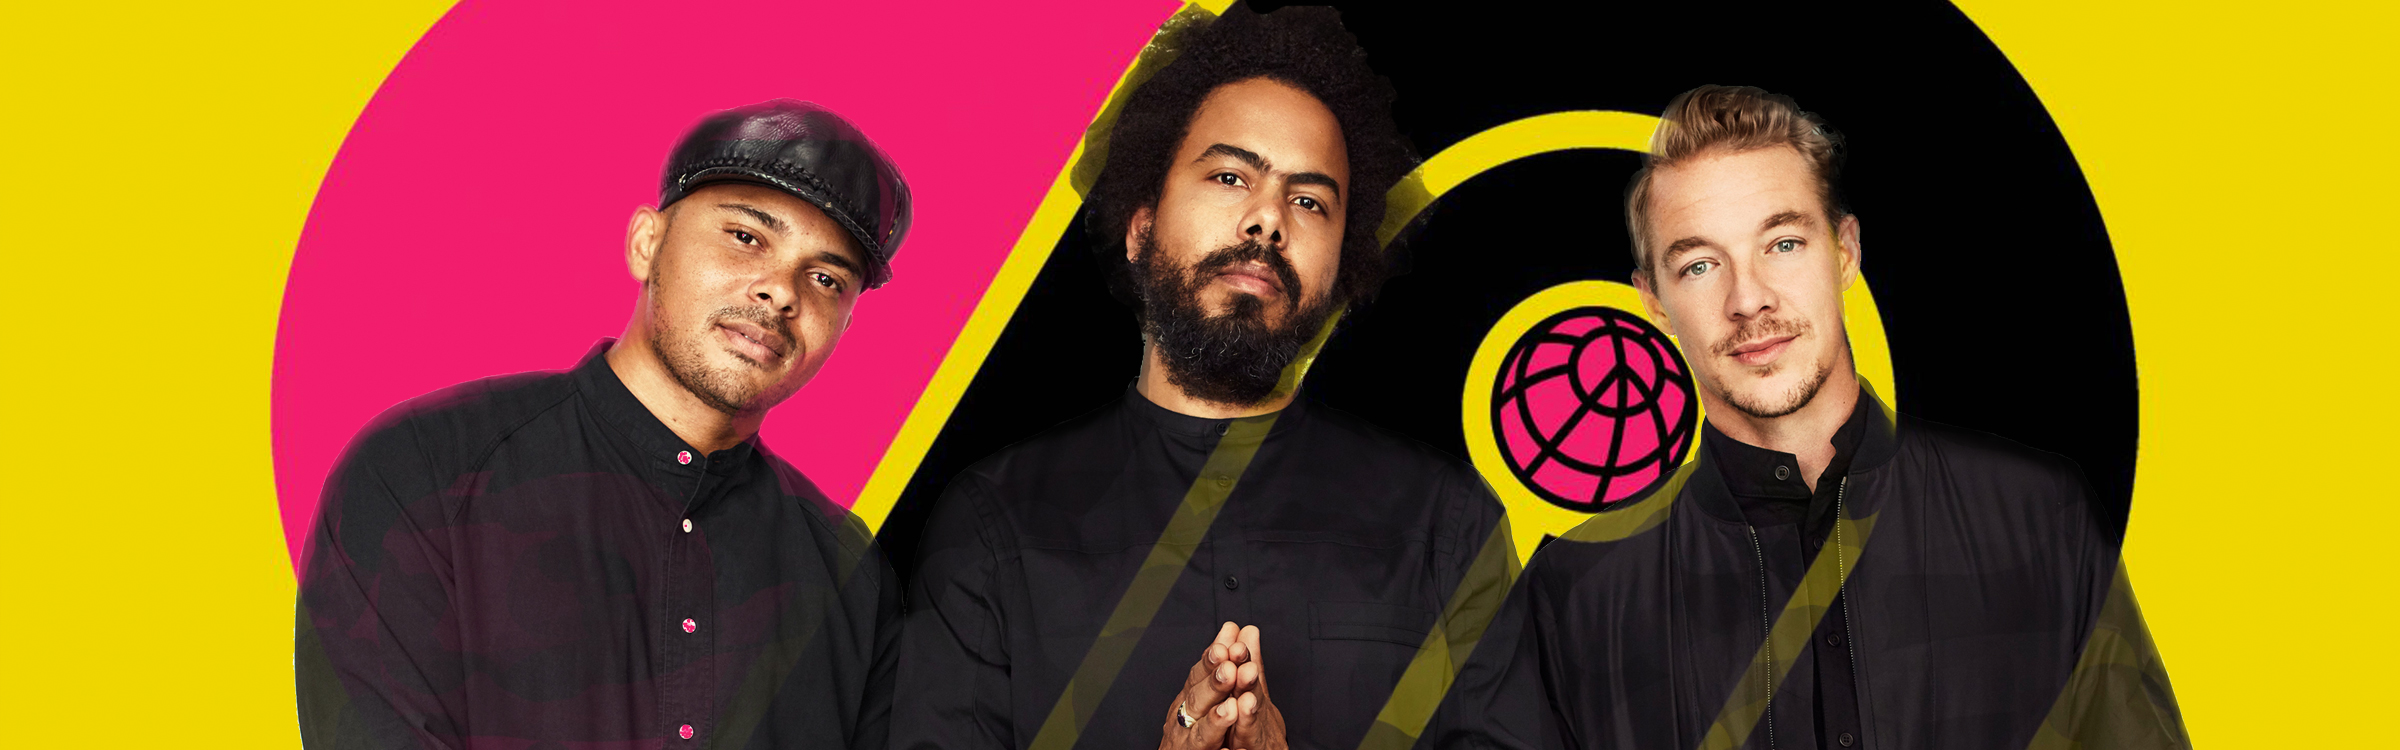 Header major lazer kunst